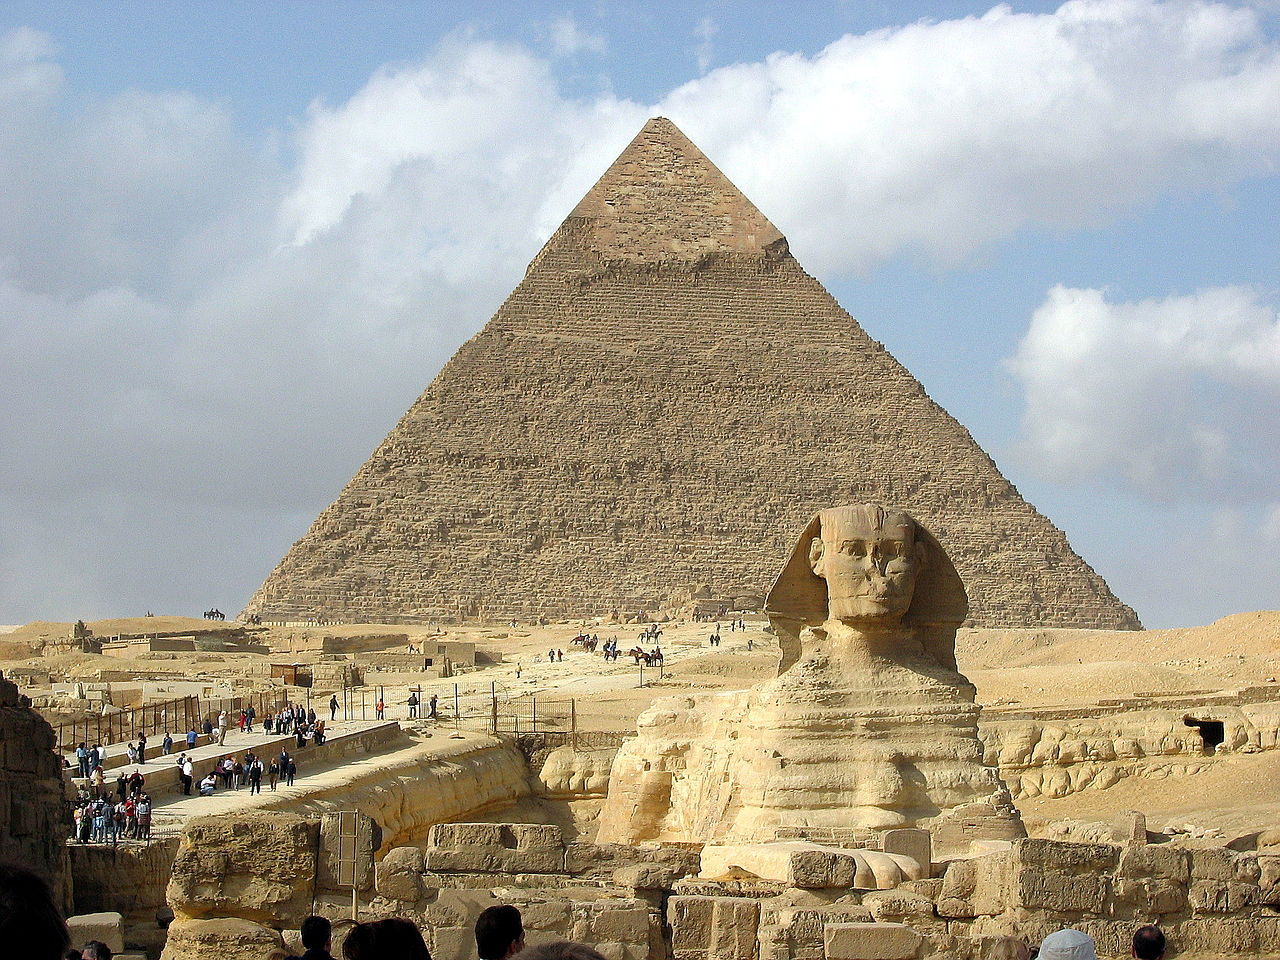 The Second Pyramid of Giza.